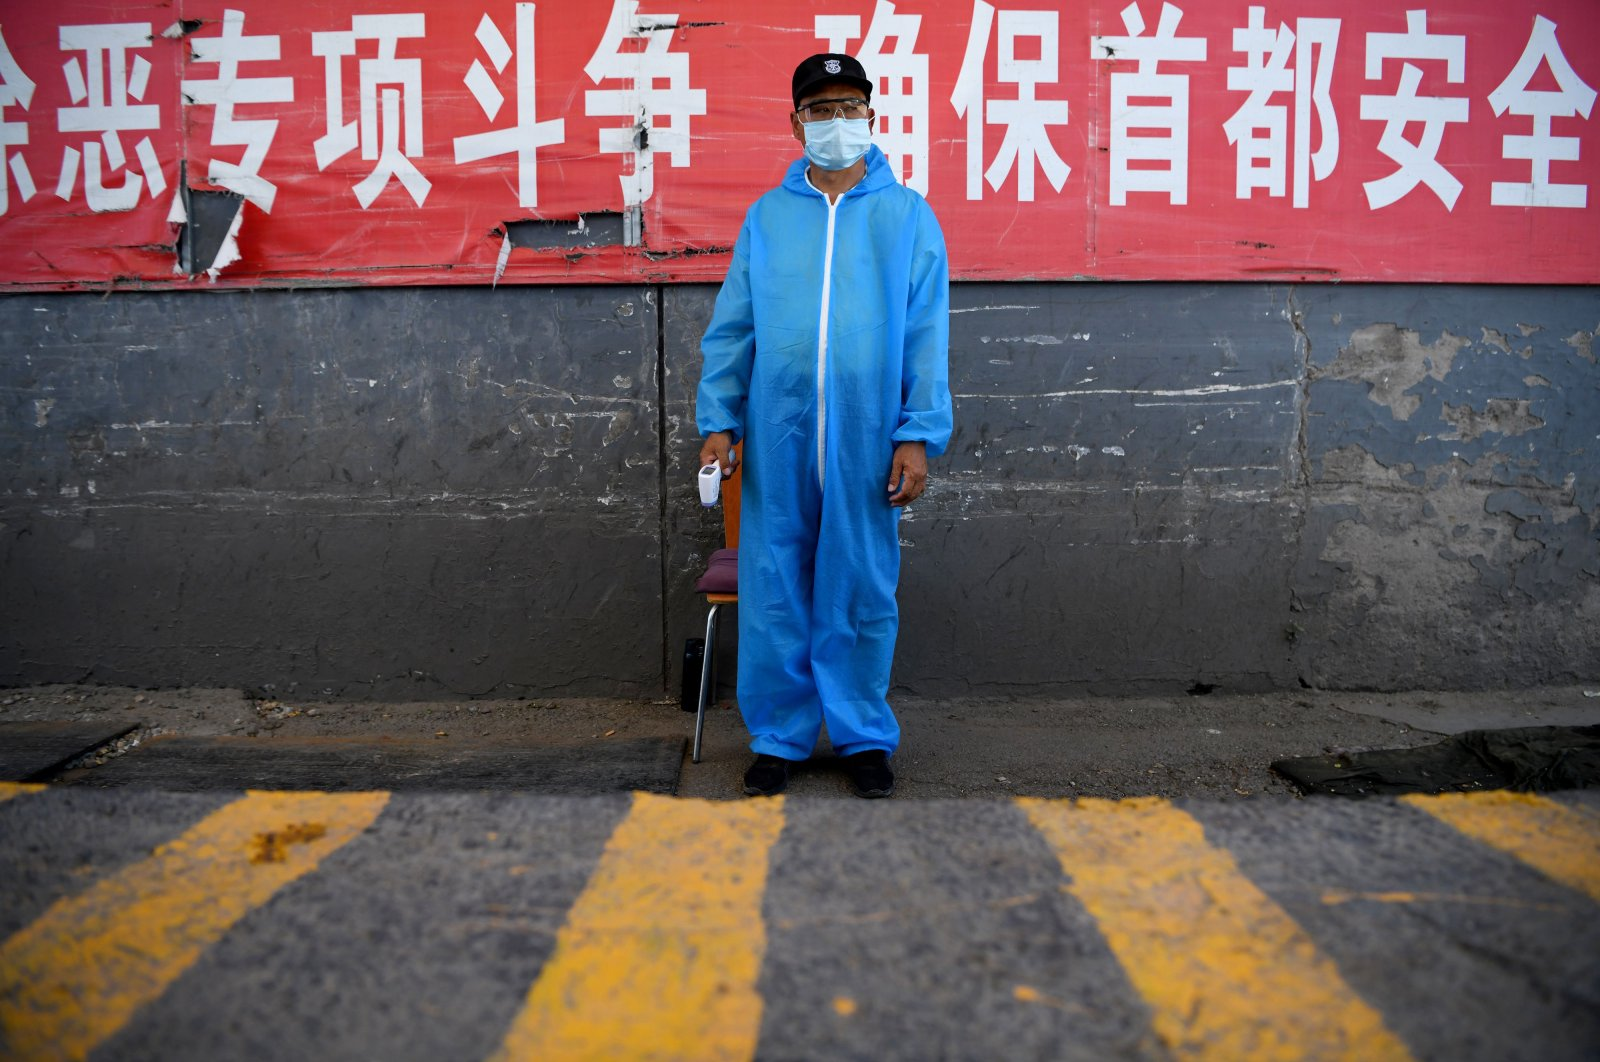 A security guard wearing a protective mask and suit stands at a checkpoint at the Xinfadi market, Beijing, June 14, 2020. (AFP Photo)